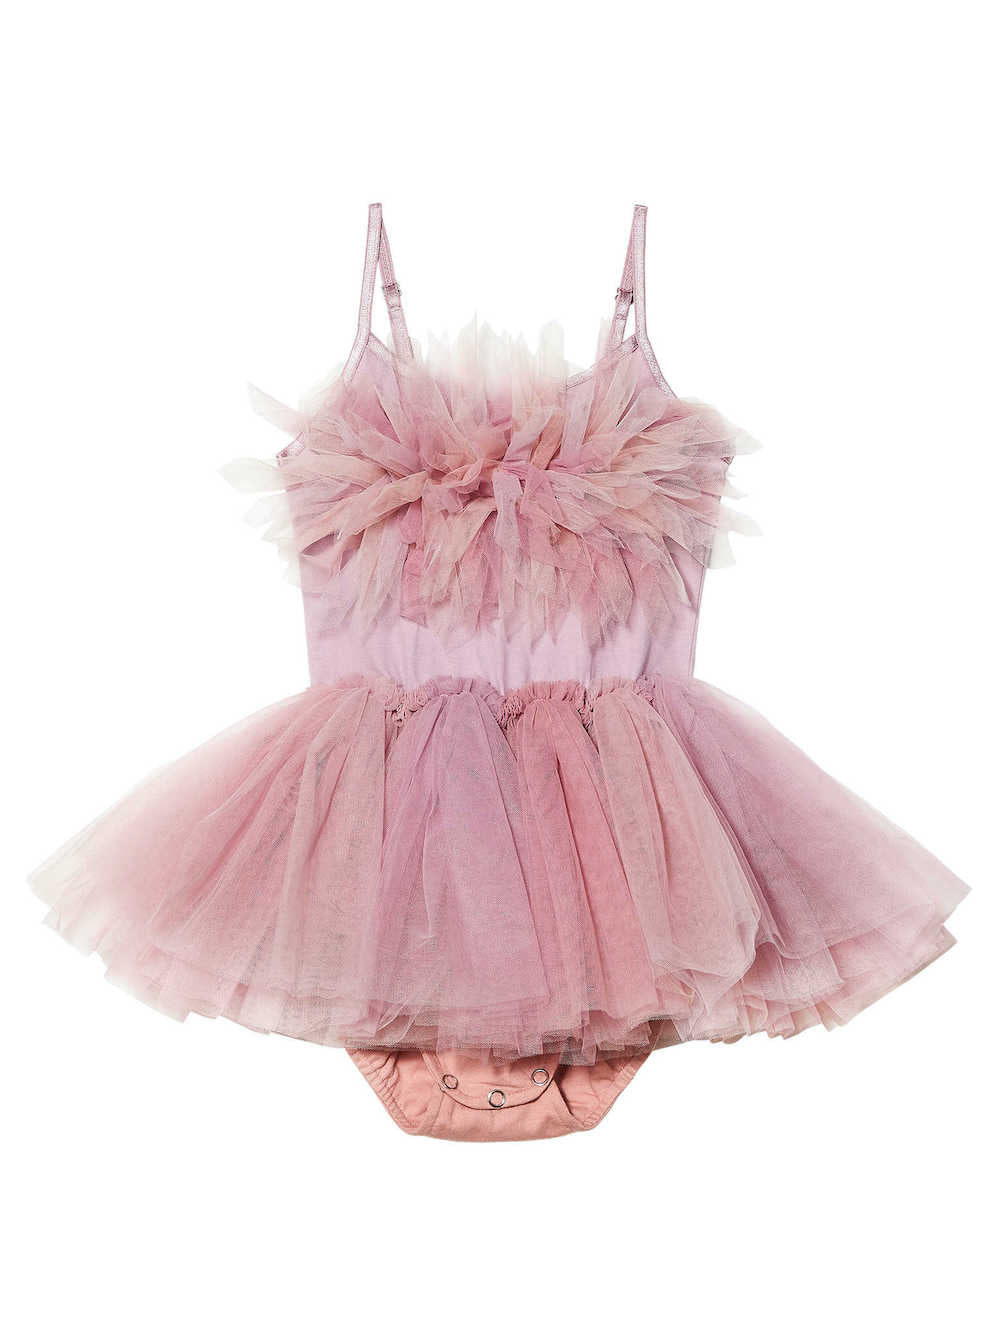 Tutu du Monde Passion Petal Tutu Dress - Periwinkle Mix